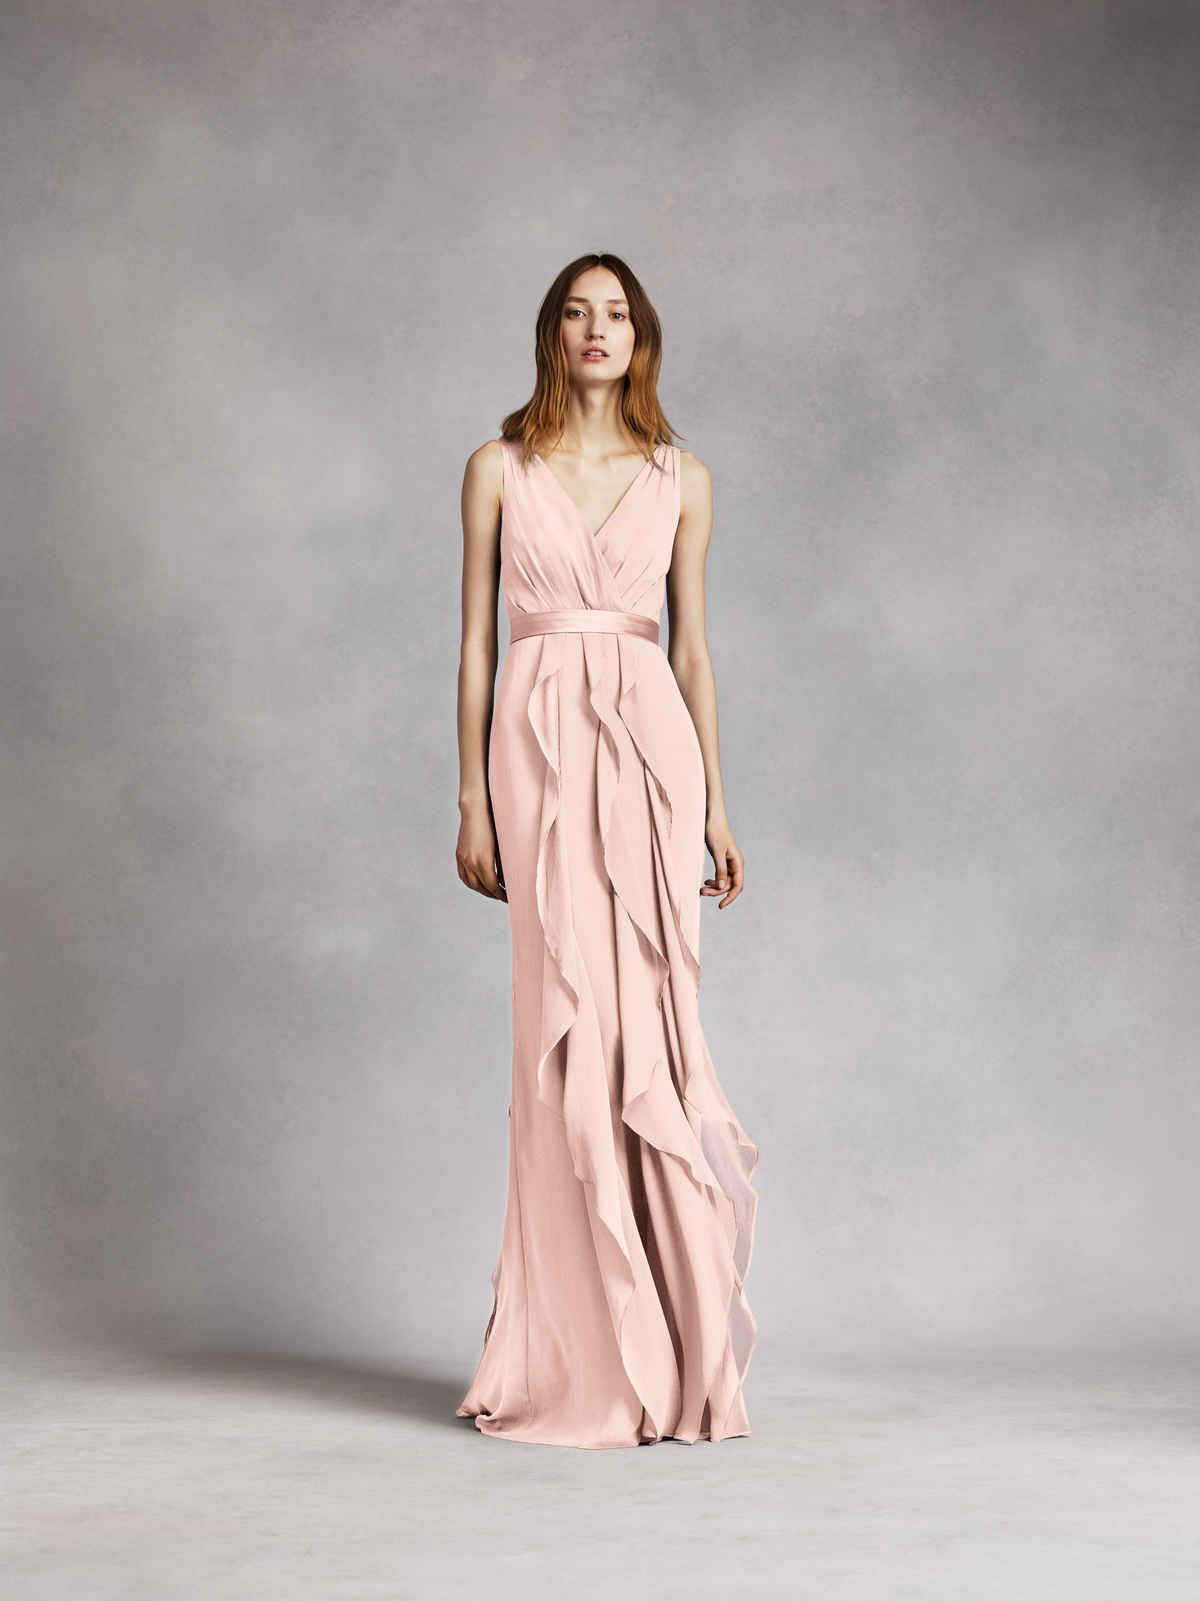 Best Bridesmaid Dresses for 2016 | Pinterest